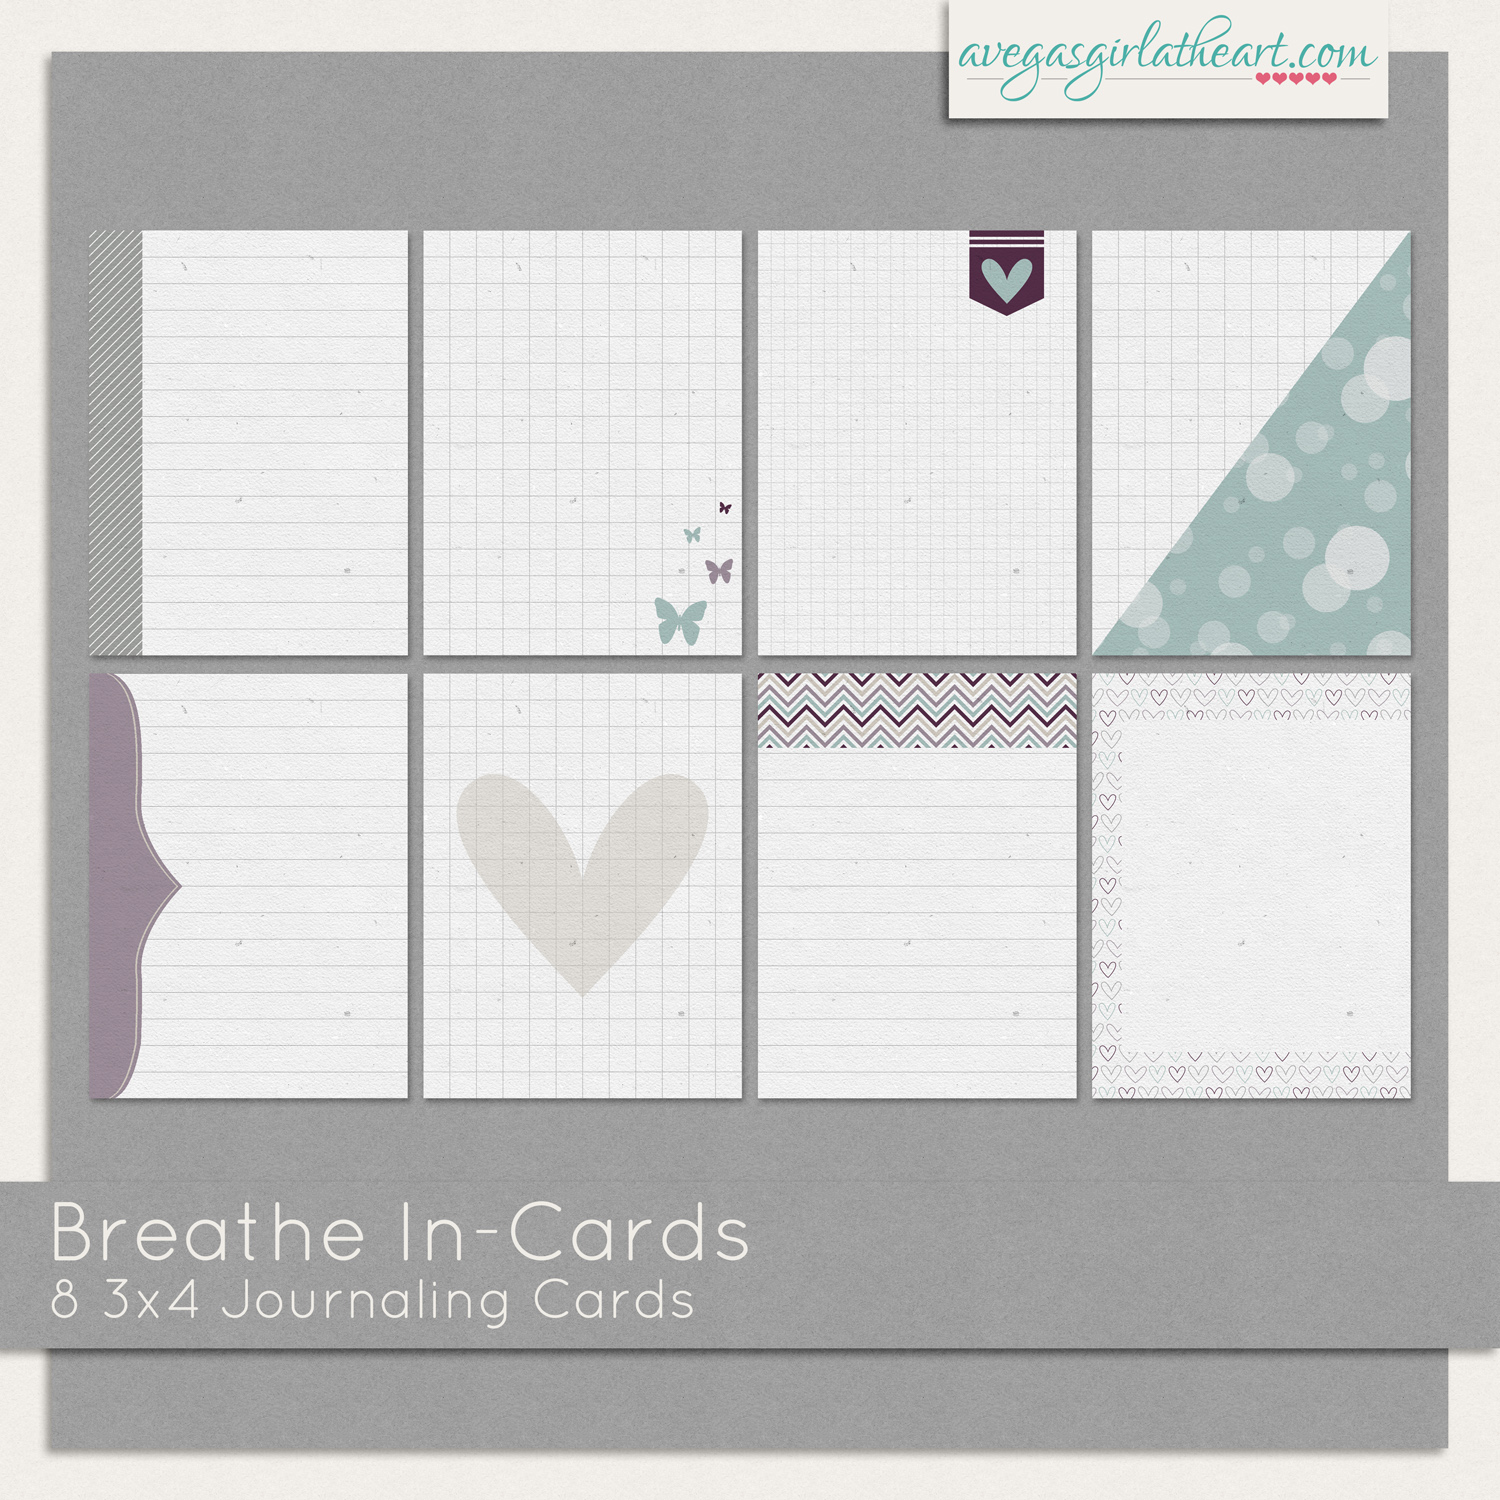 https://www.etsy.com/listing/187653668/breathe-in-journaling-cards